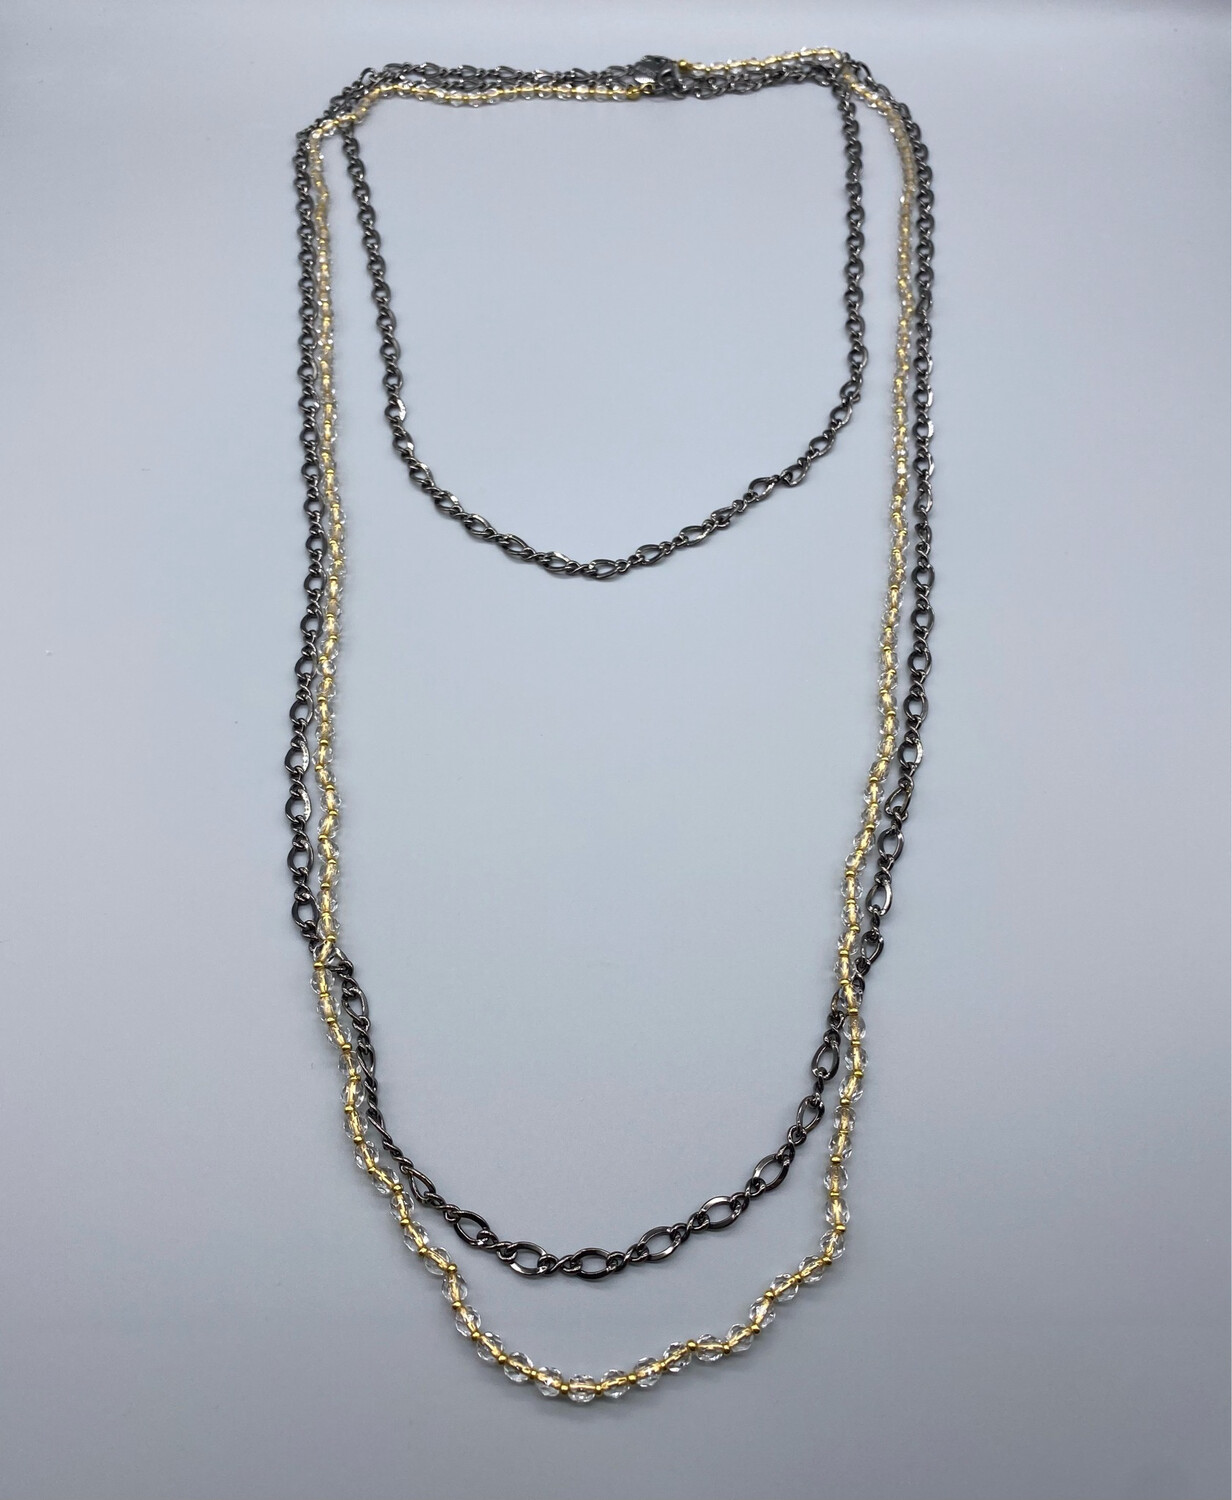 Gunmetal + Gold Dual Chain Necklace